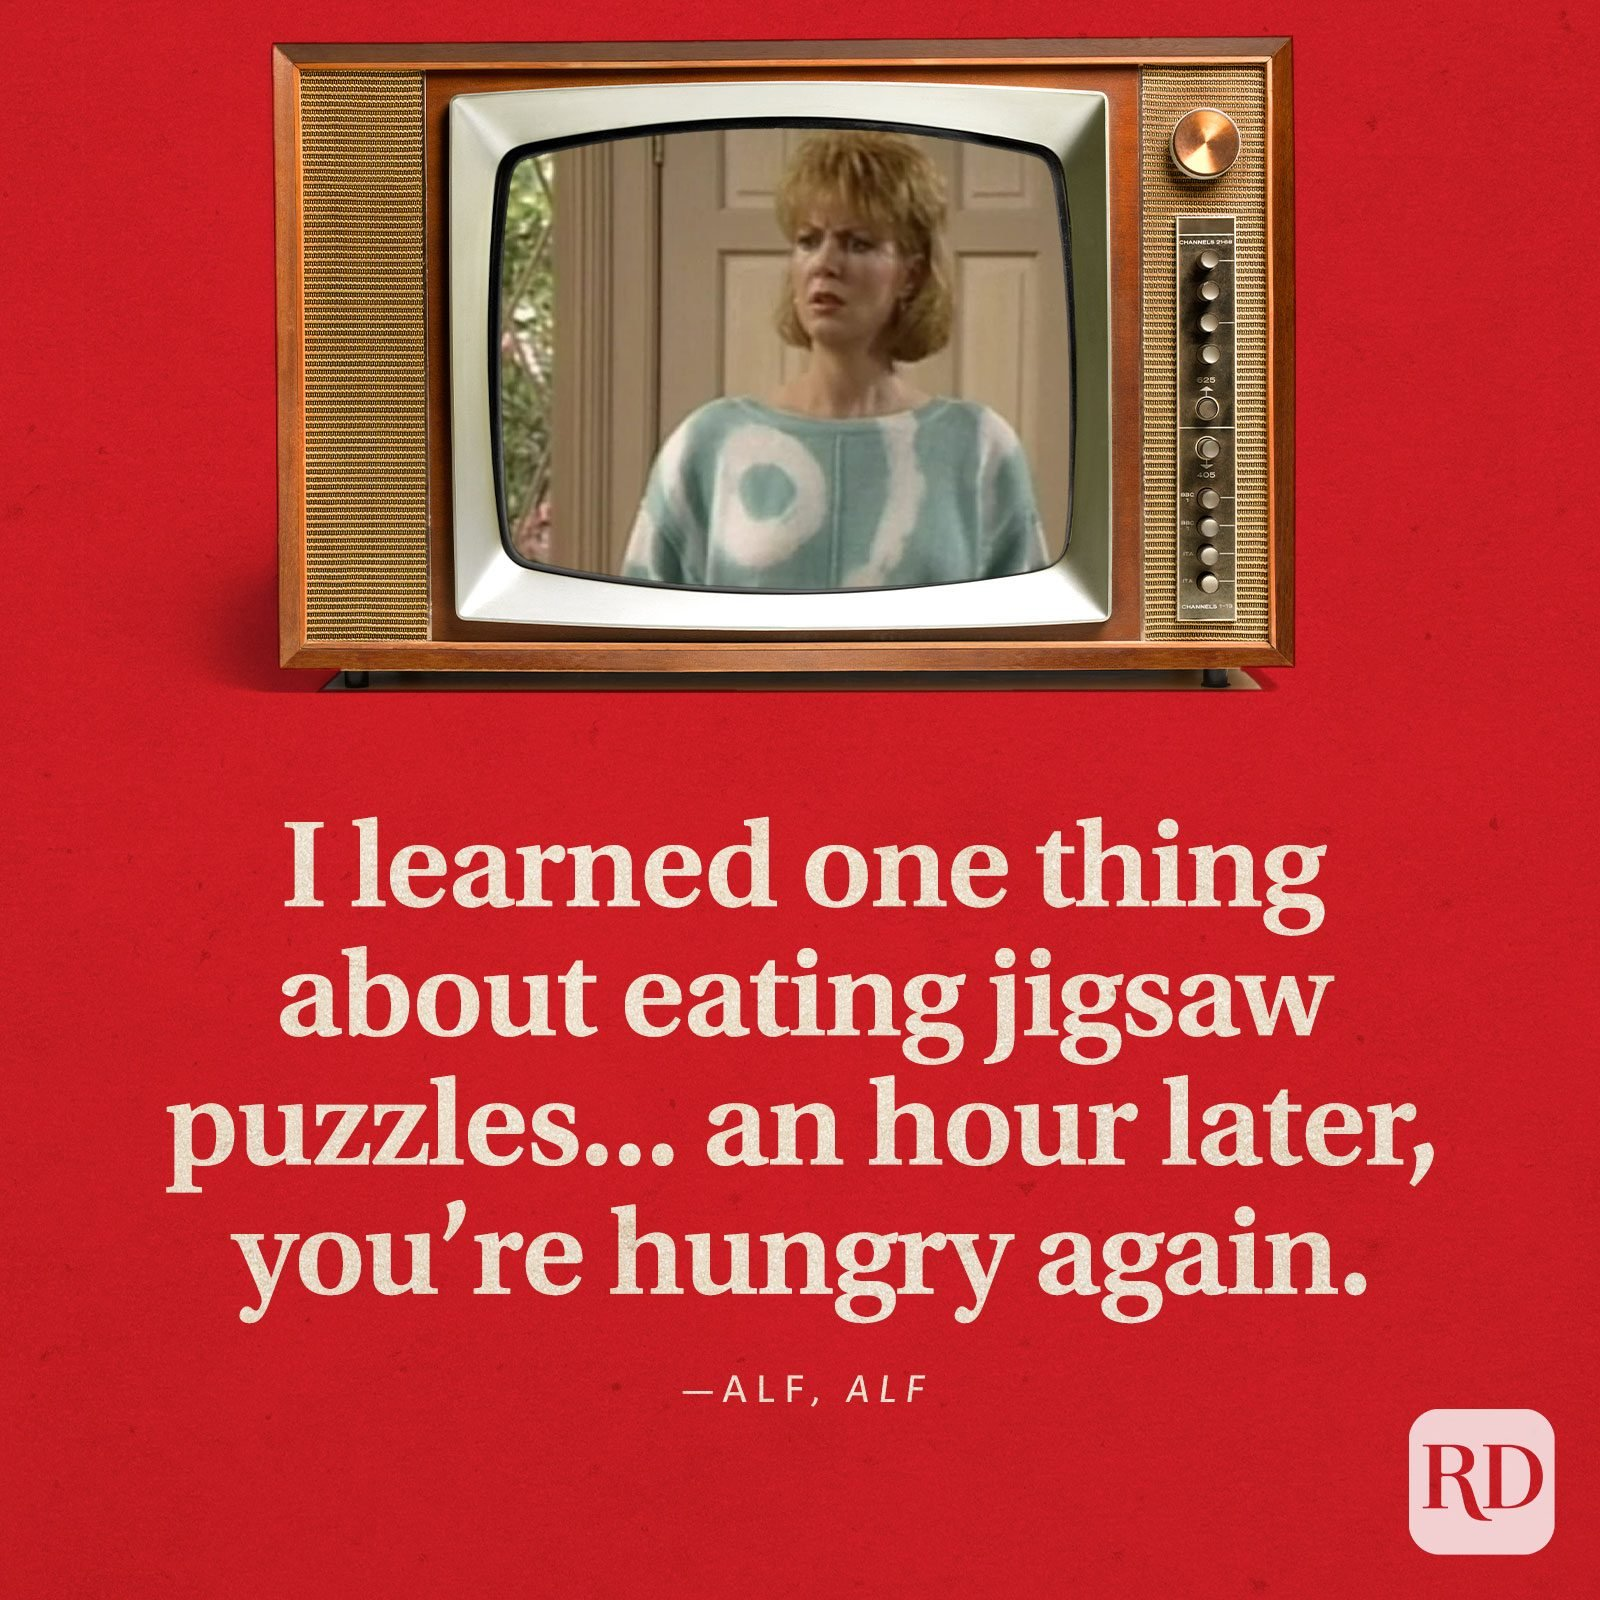 """""""I learned one thing about eating jigsaw puzzles...an hour later, you're hungry again."""" —ALF inALF."""